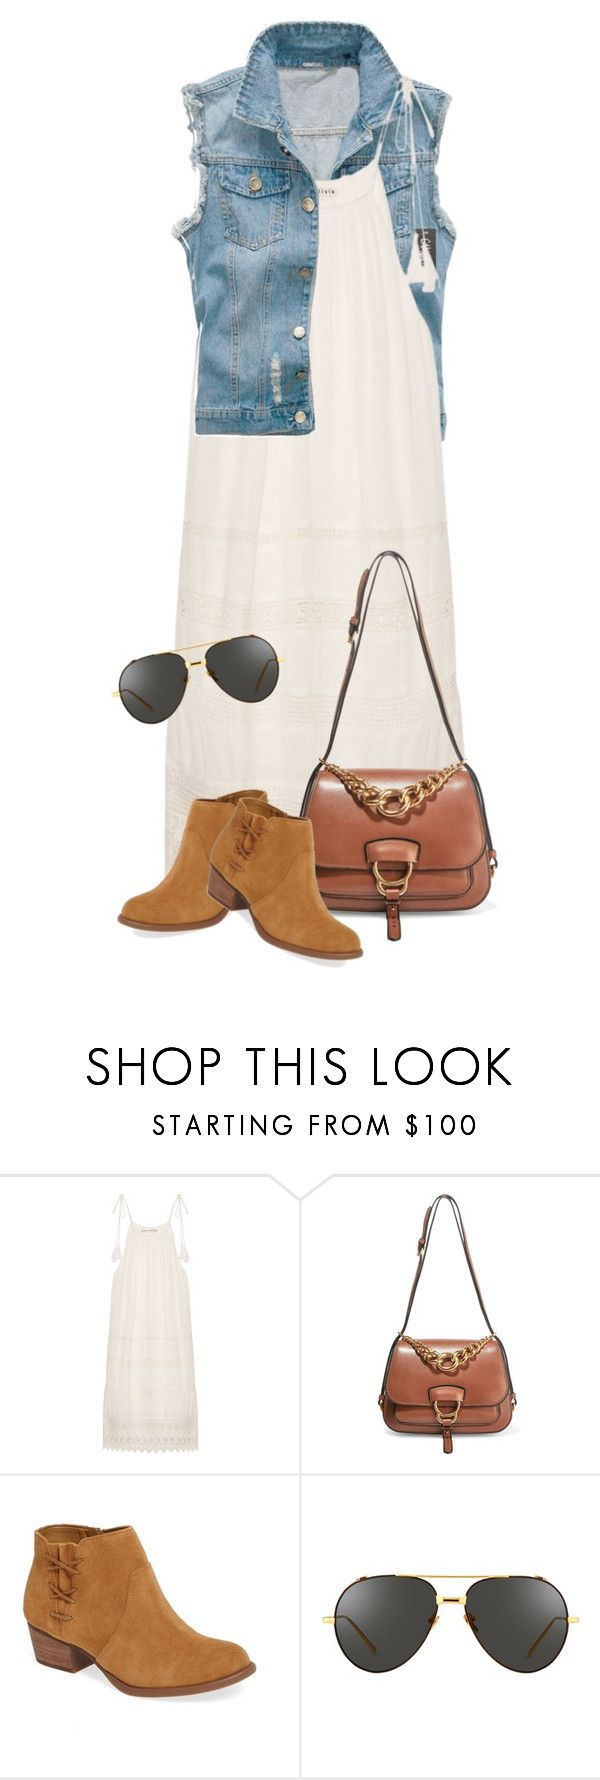 """Oh the Ivory"" by indirareeves on Polyvore featuring Alice + Olivia, Miu Miu, Jessica Simpson and Linda Farrow"